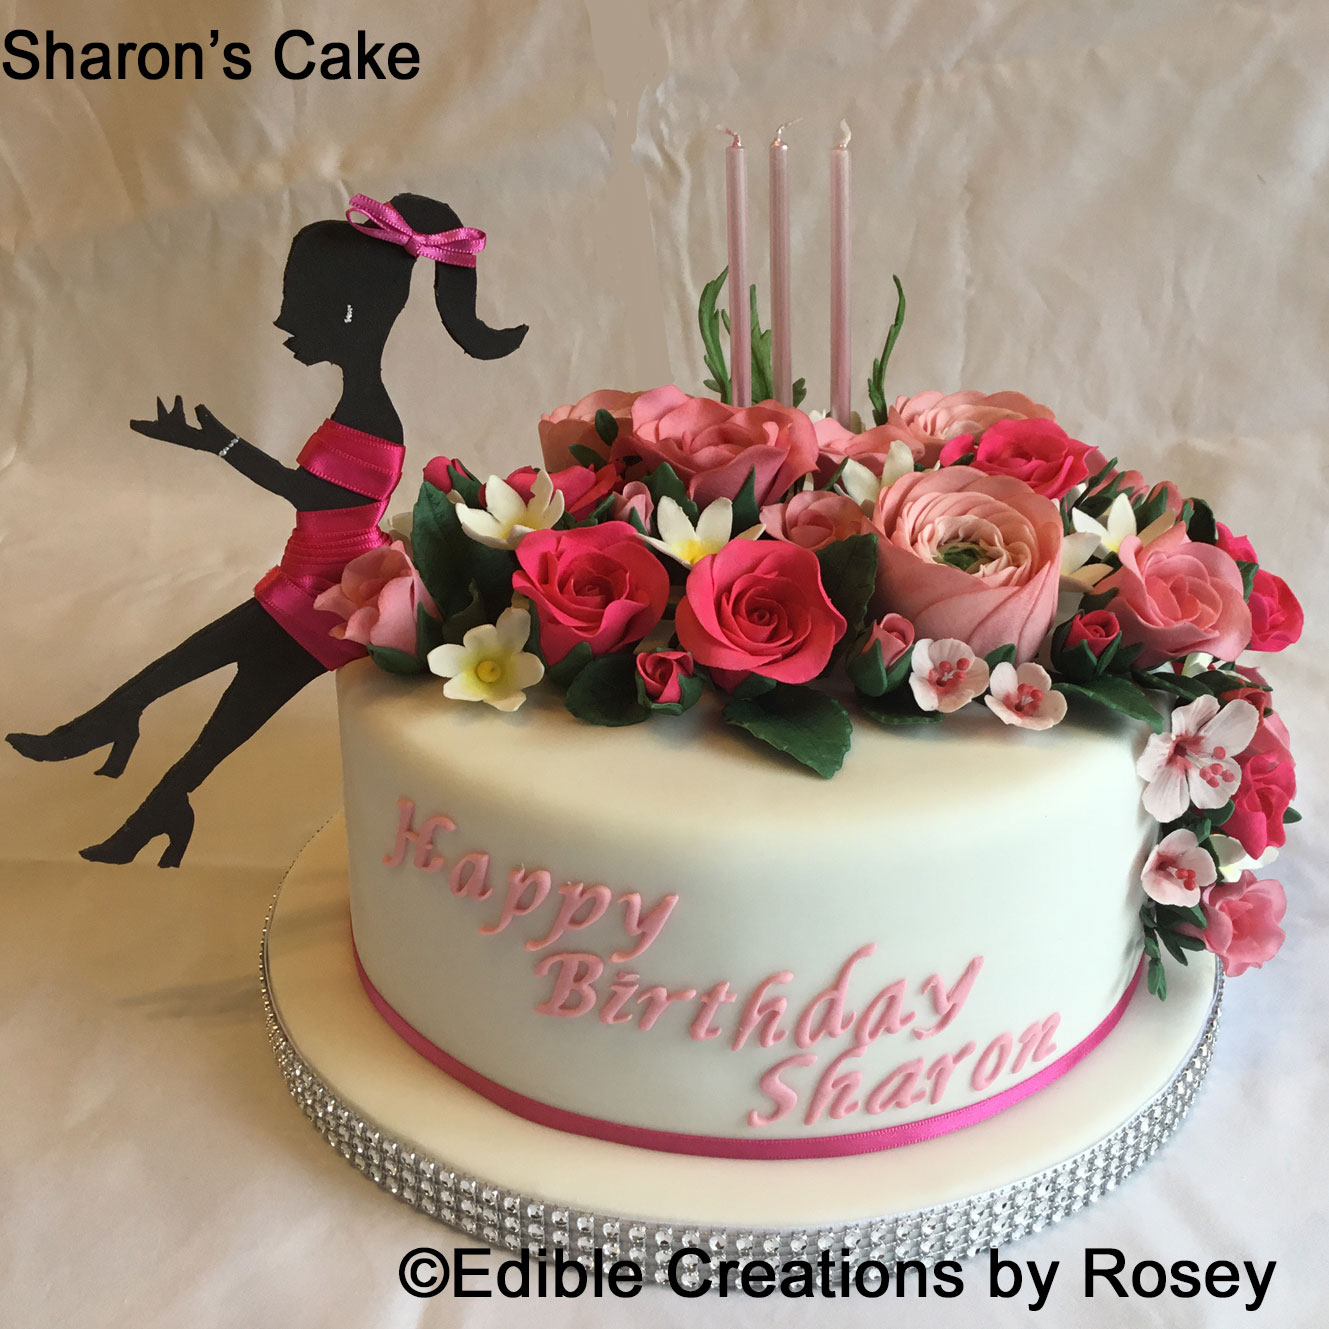 Pleasing Birthday Cakes By Edible Creations By Rosey In South West London Birthday Cards Printable Trancafe Filternl